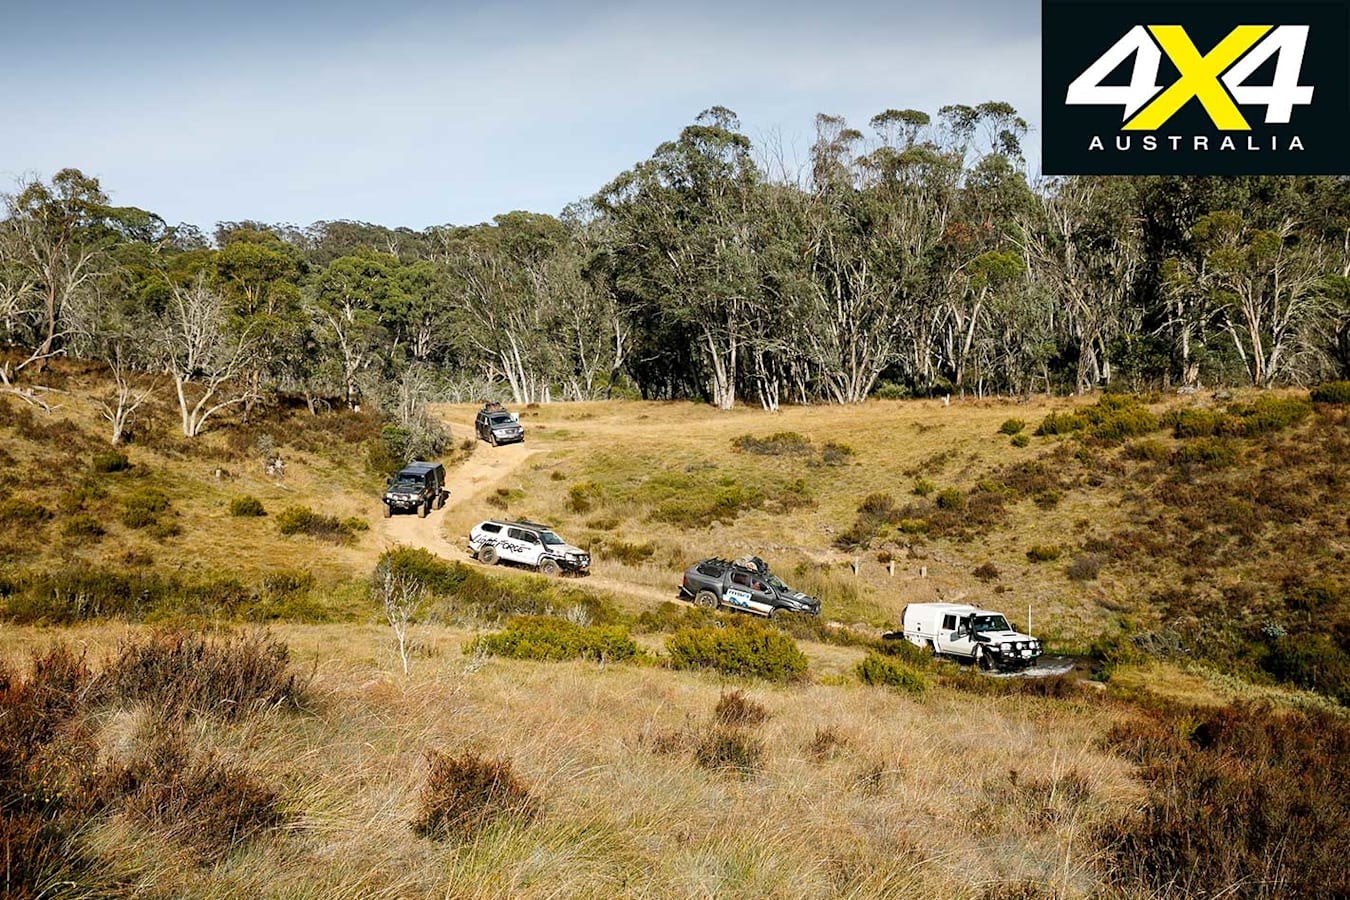 Victorian High Country 4 X 4 Adventure Series Trail Countryside Jpg